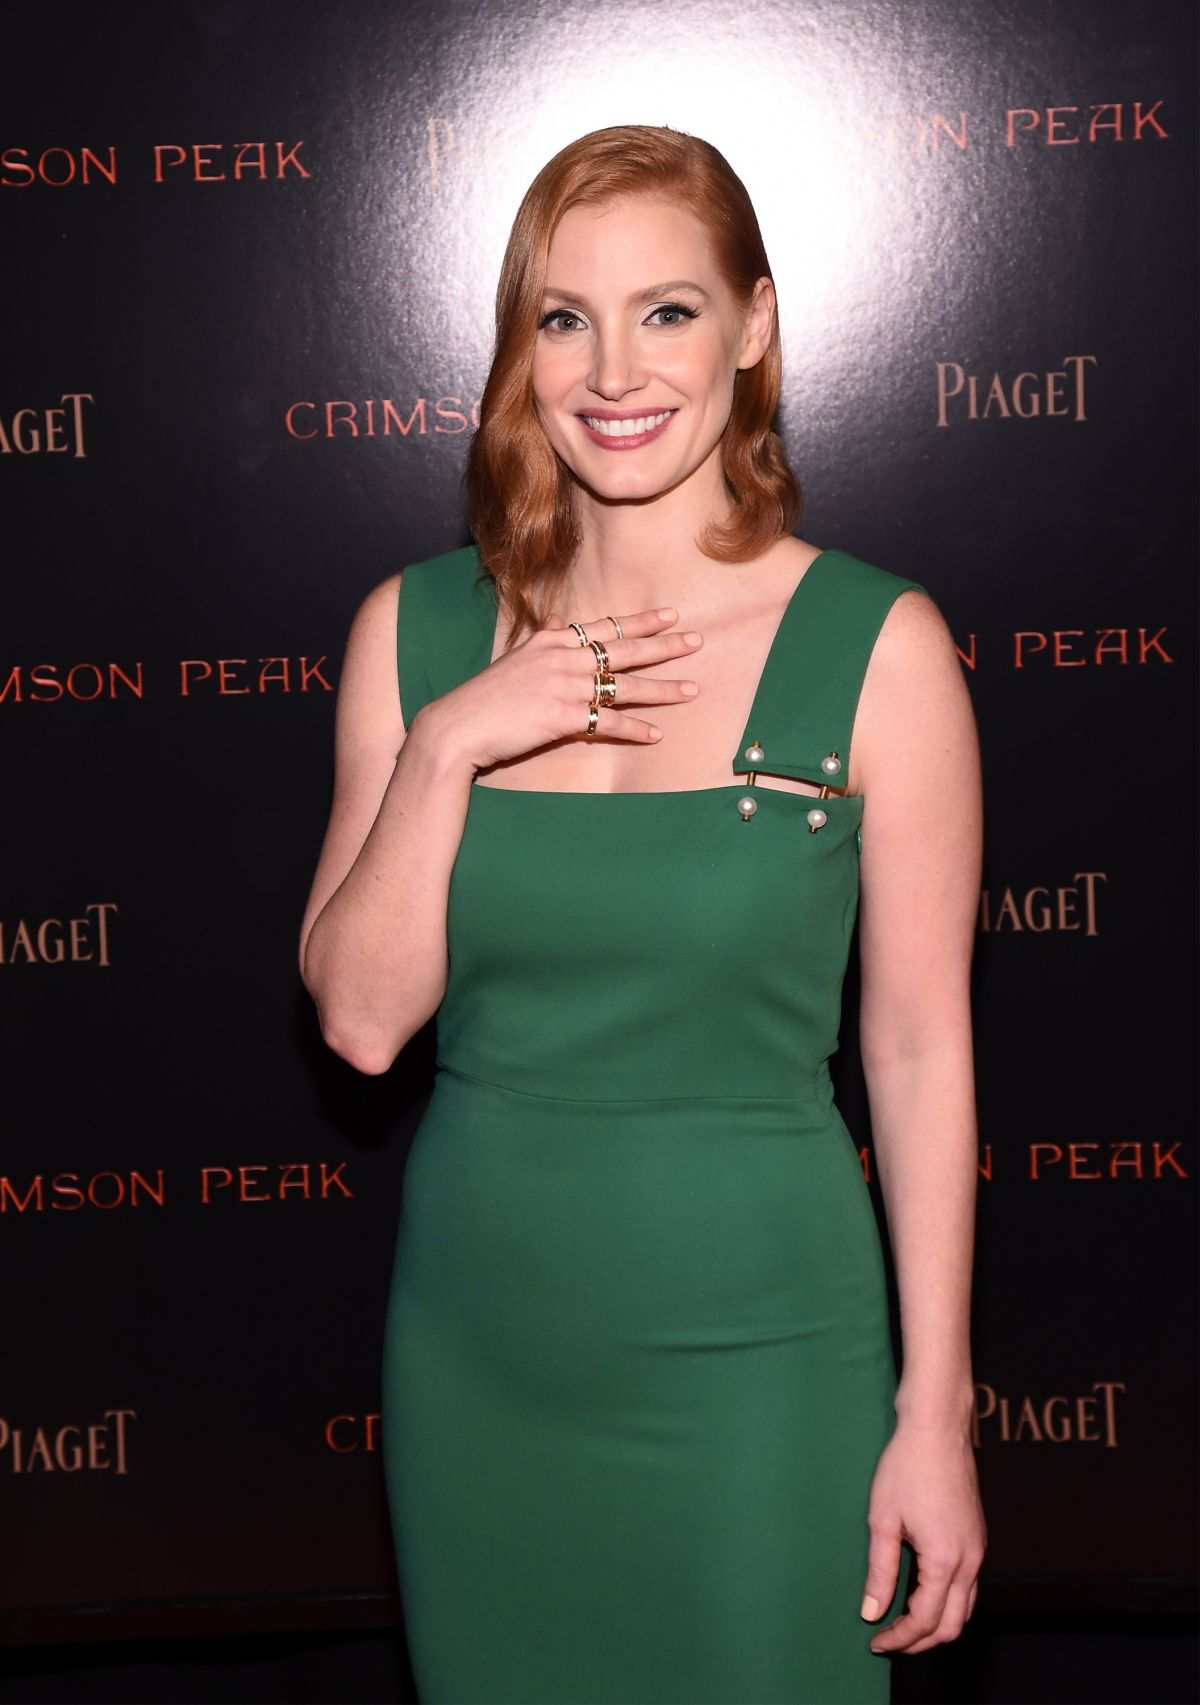 JESSICA CHASTAIN at Crimson Peak Premiere Co-hosted by